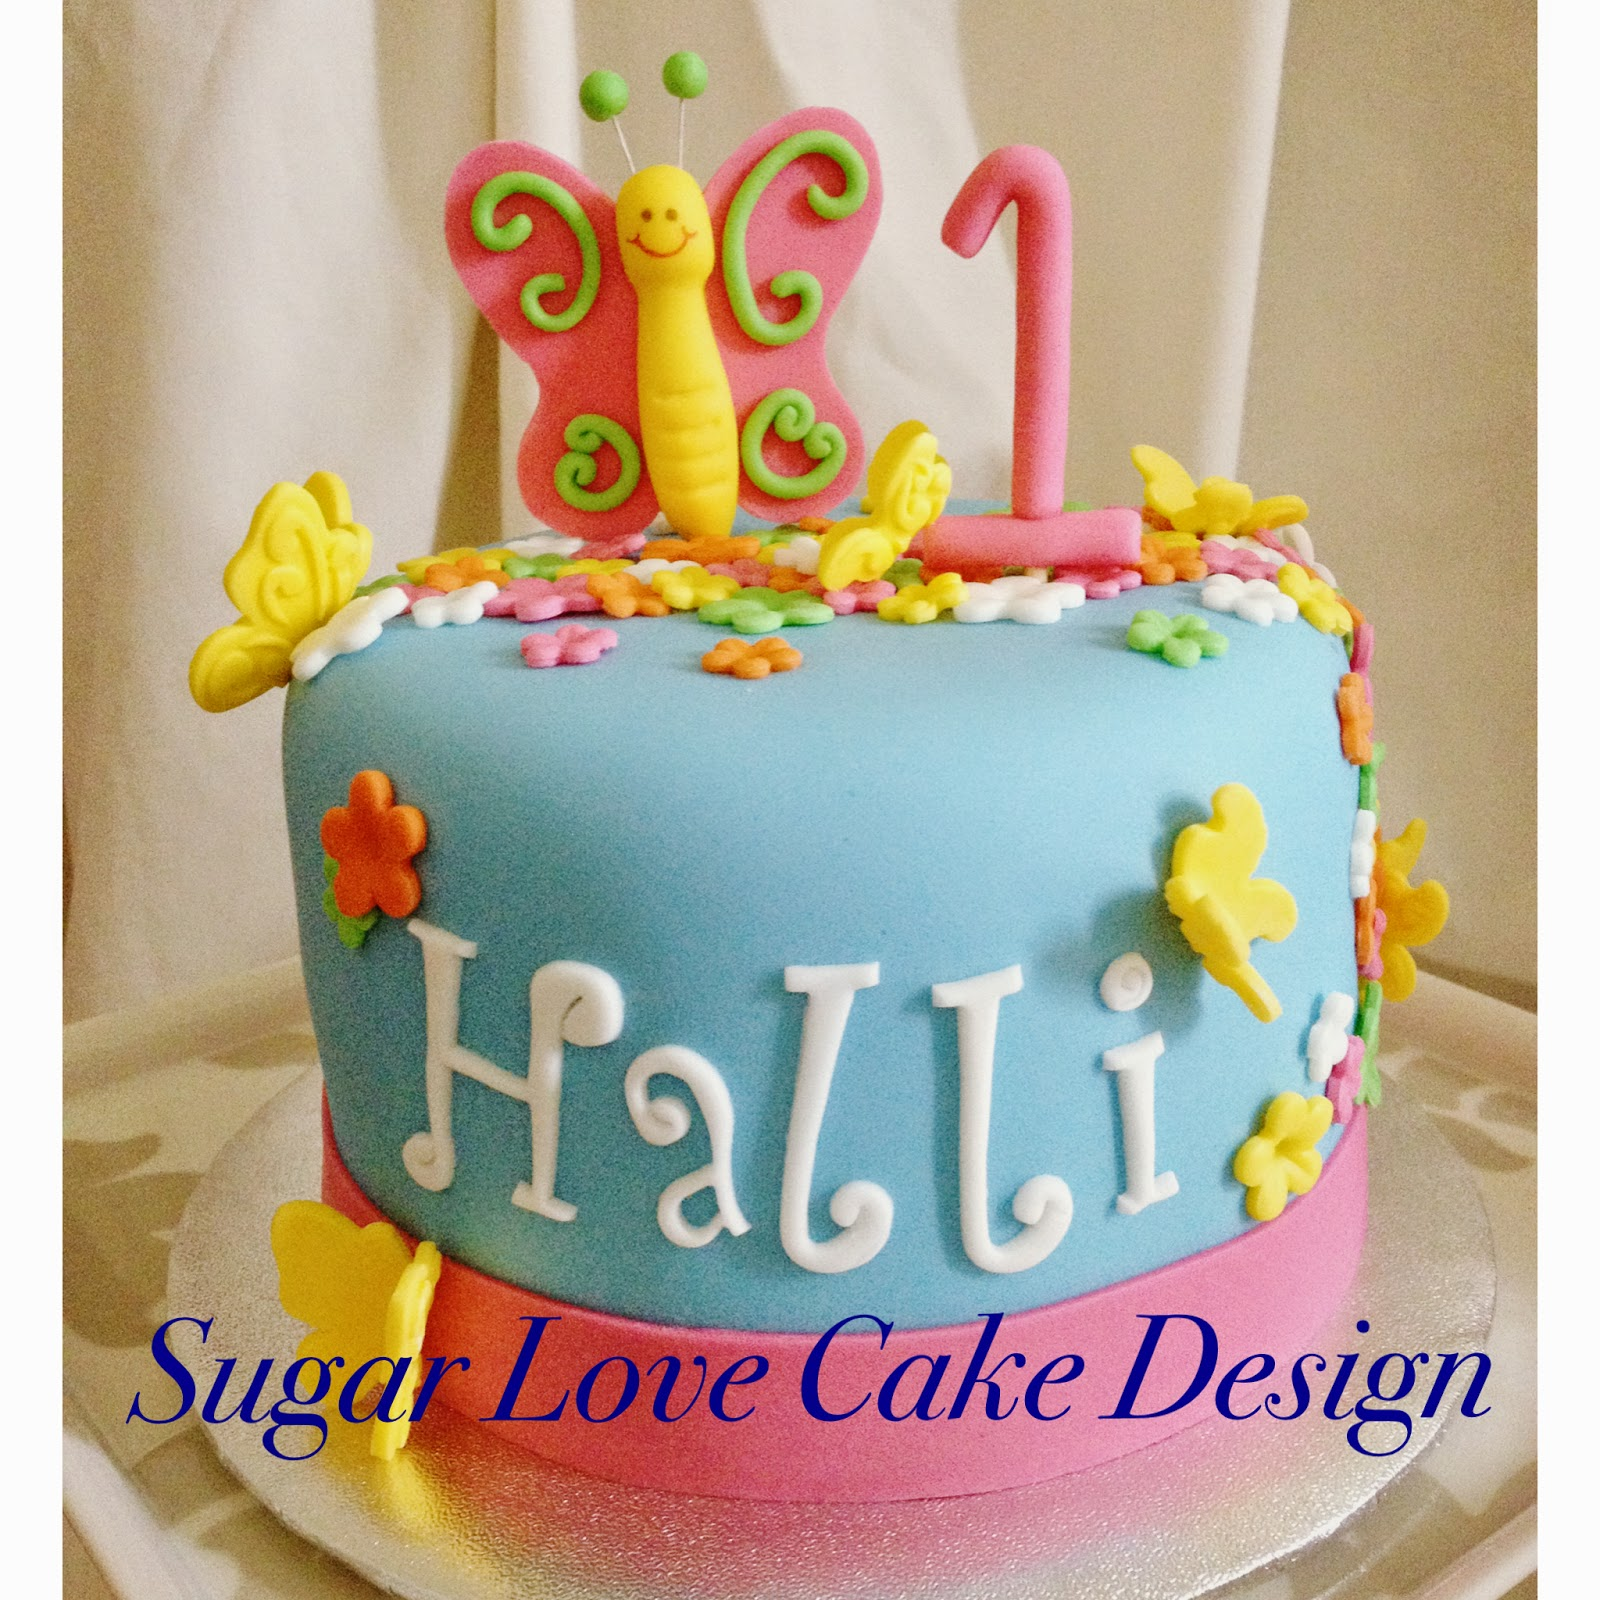 Sugar Love Cake Design Butterflies and Flowers Smash Cake